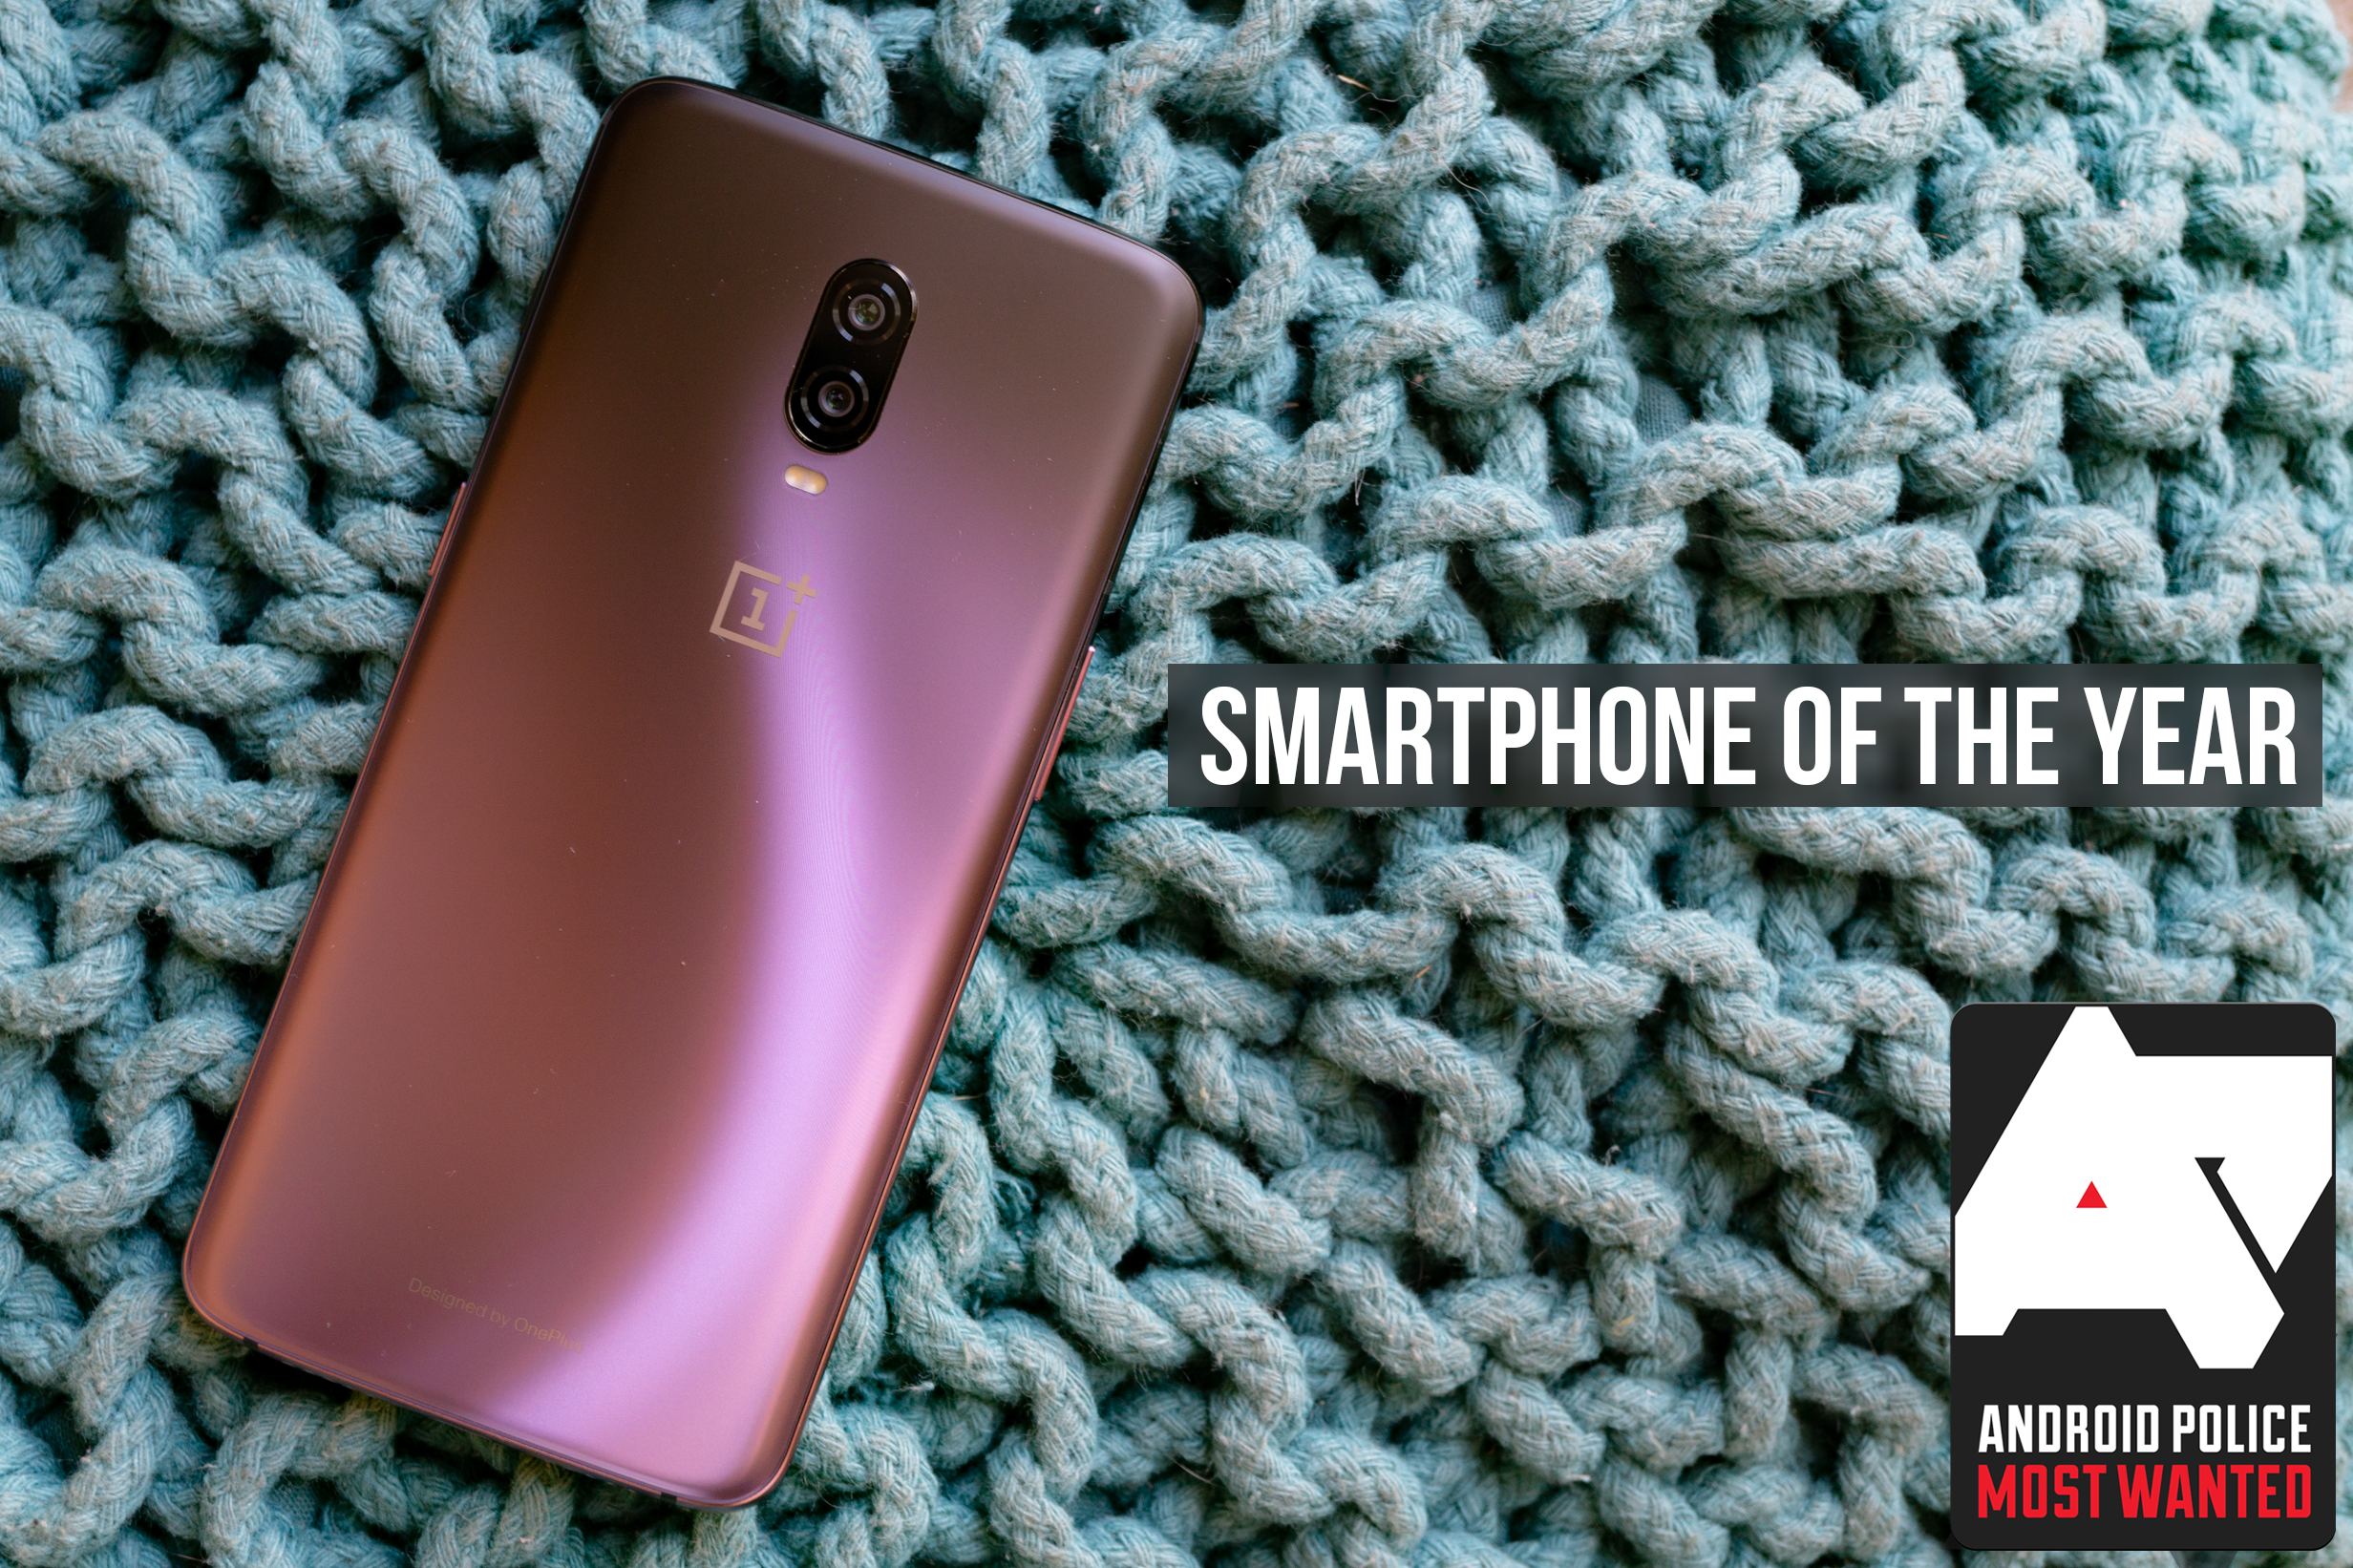 Android Police's 2018 Smartphone of the Year is the OnePlus 6T